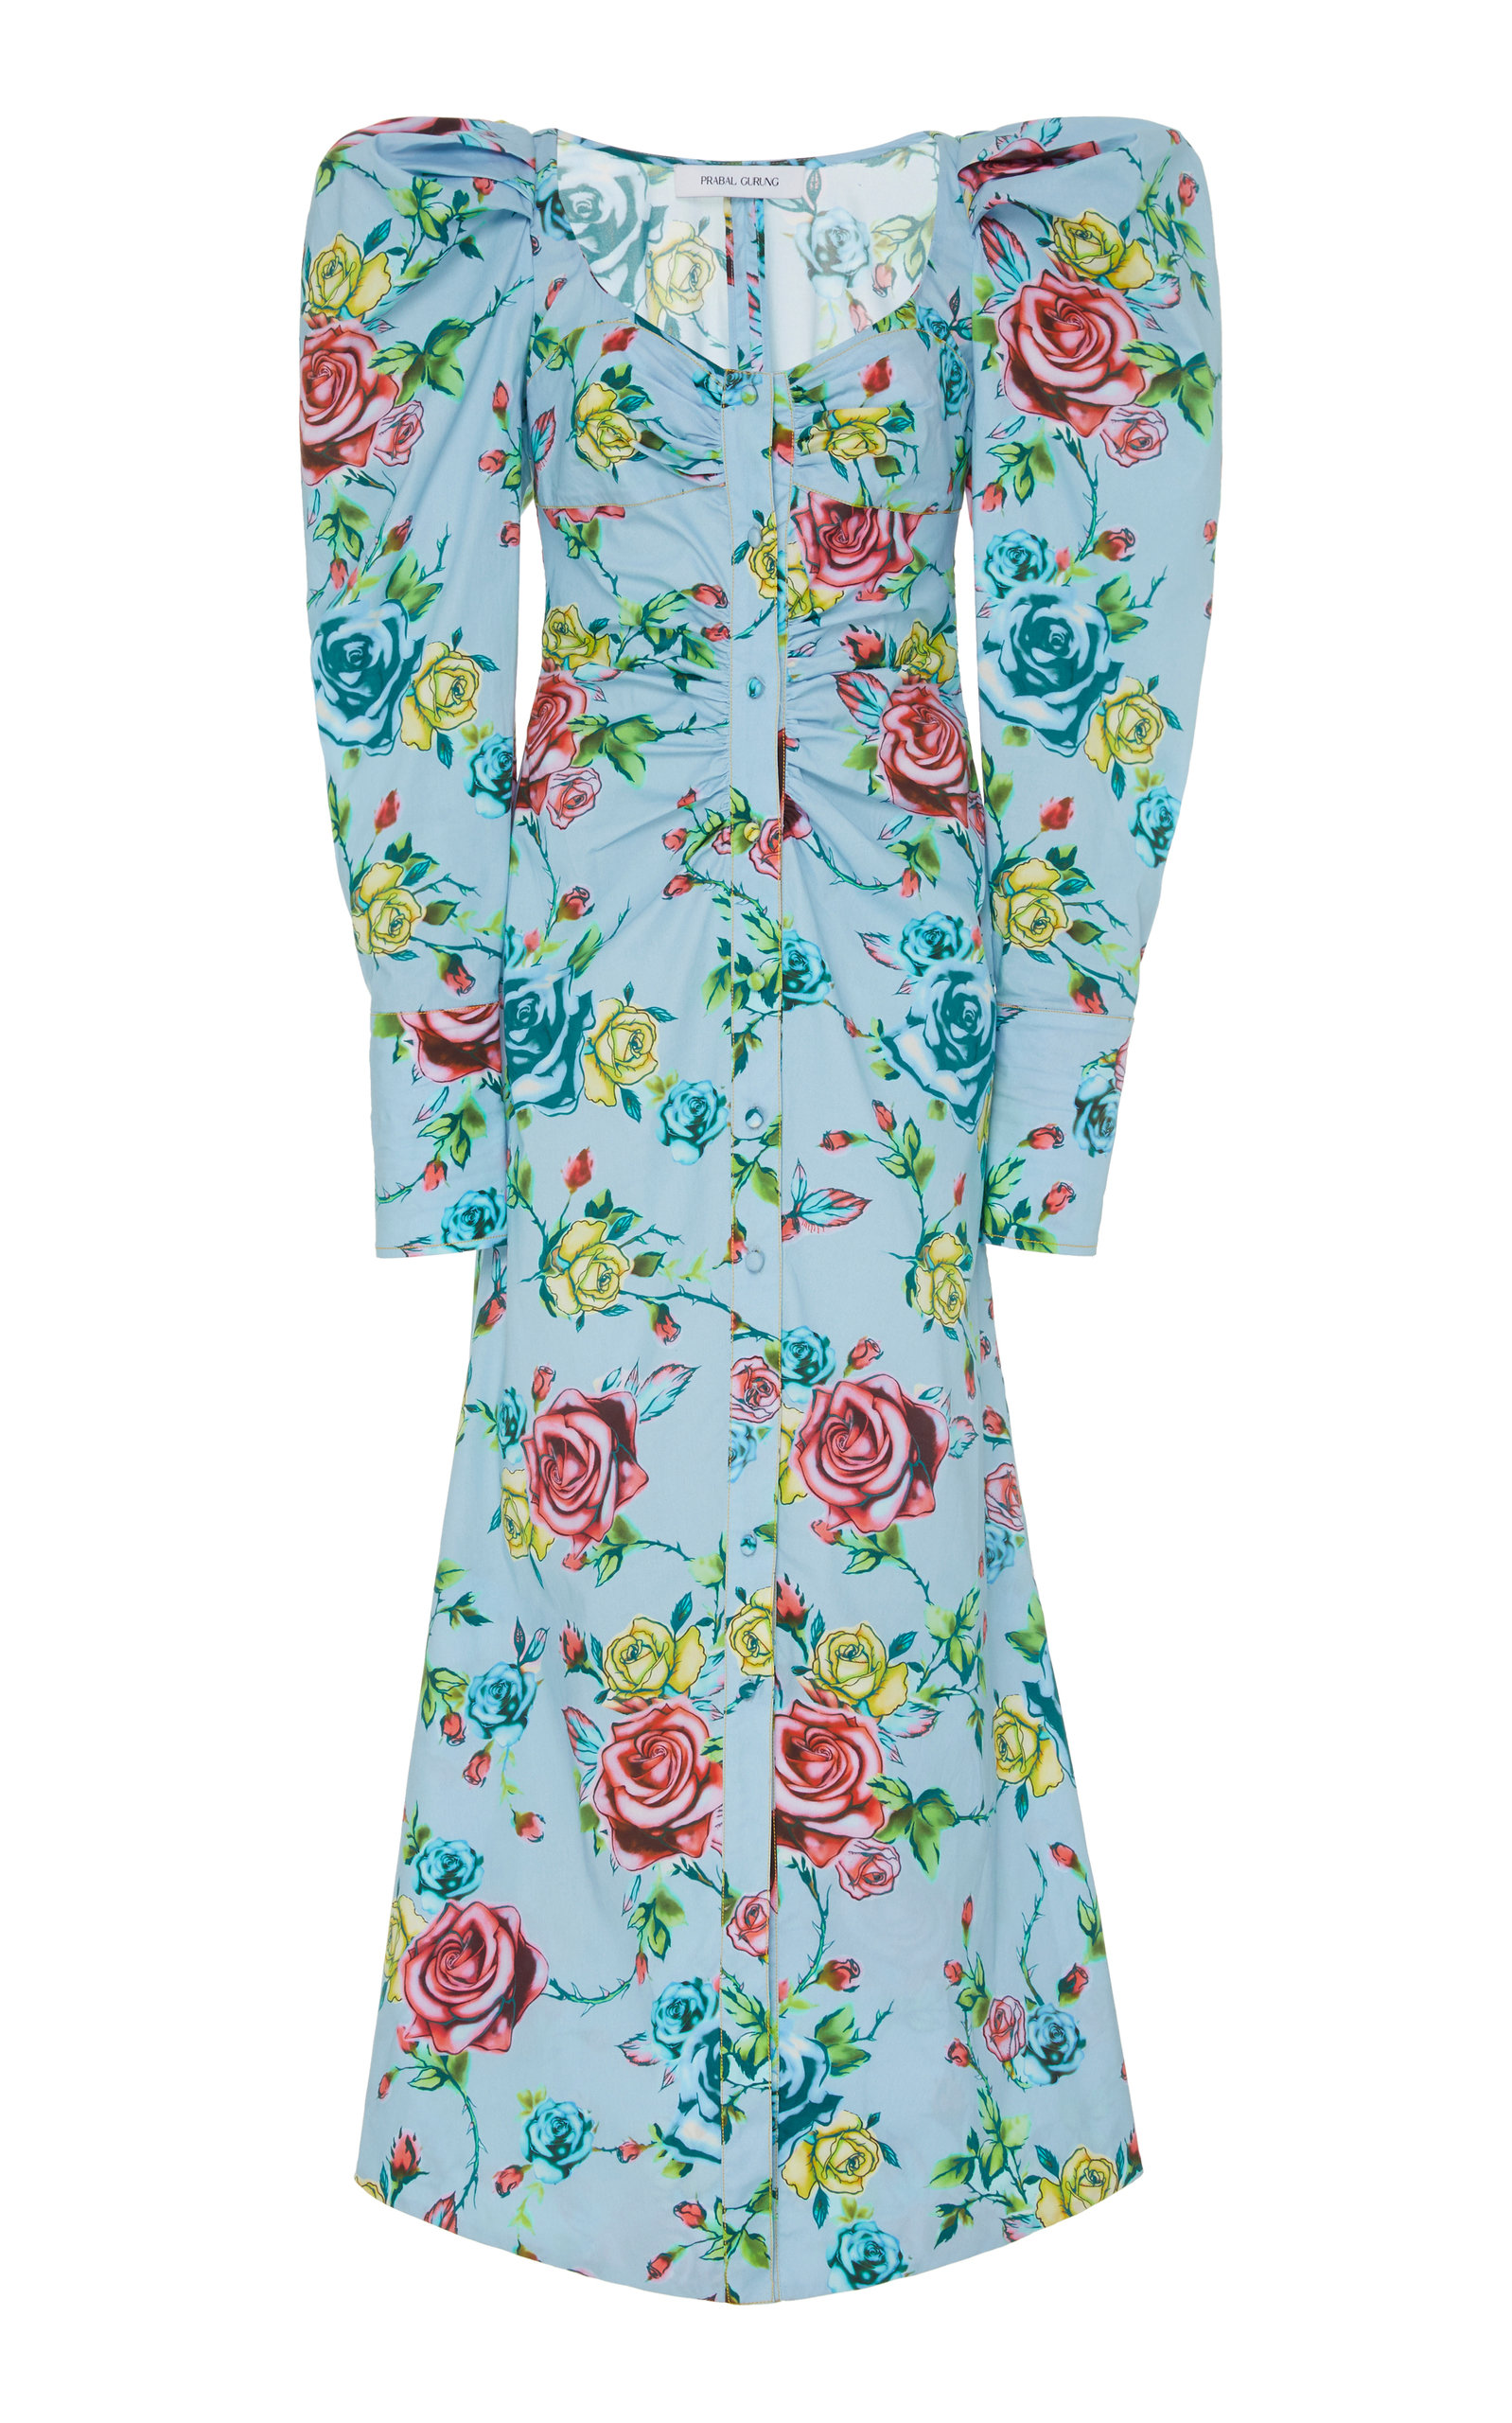 Buy Prabal Gurung Floral-Print Cotton-Blend Shirt Dress online, shop Prabal Gurung at the best price